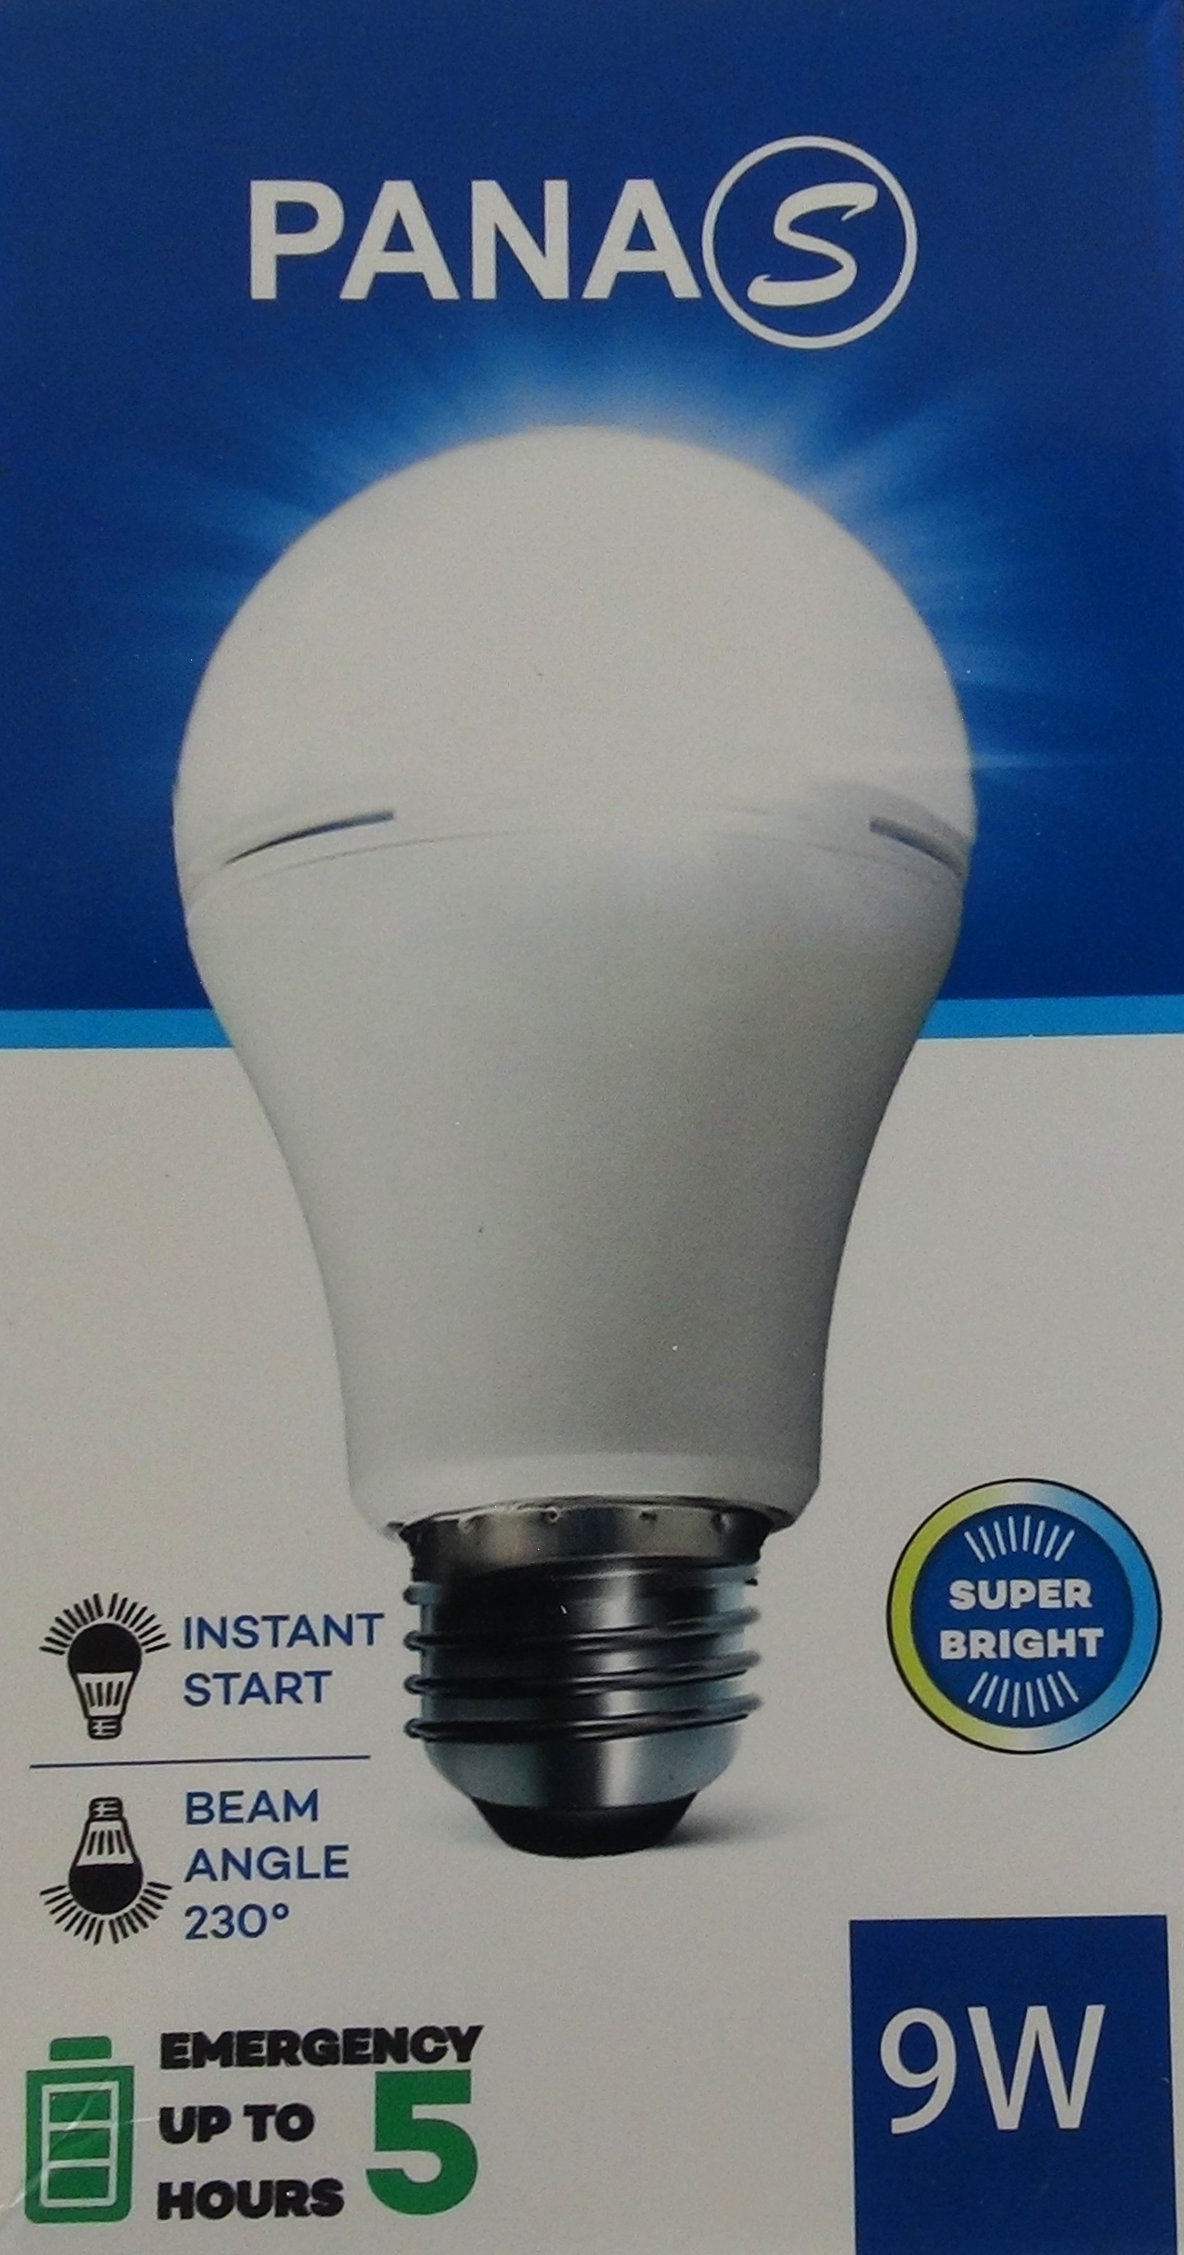 Light Bulb / Ampoule PANAS rechargeable 9 W